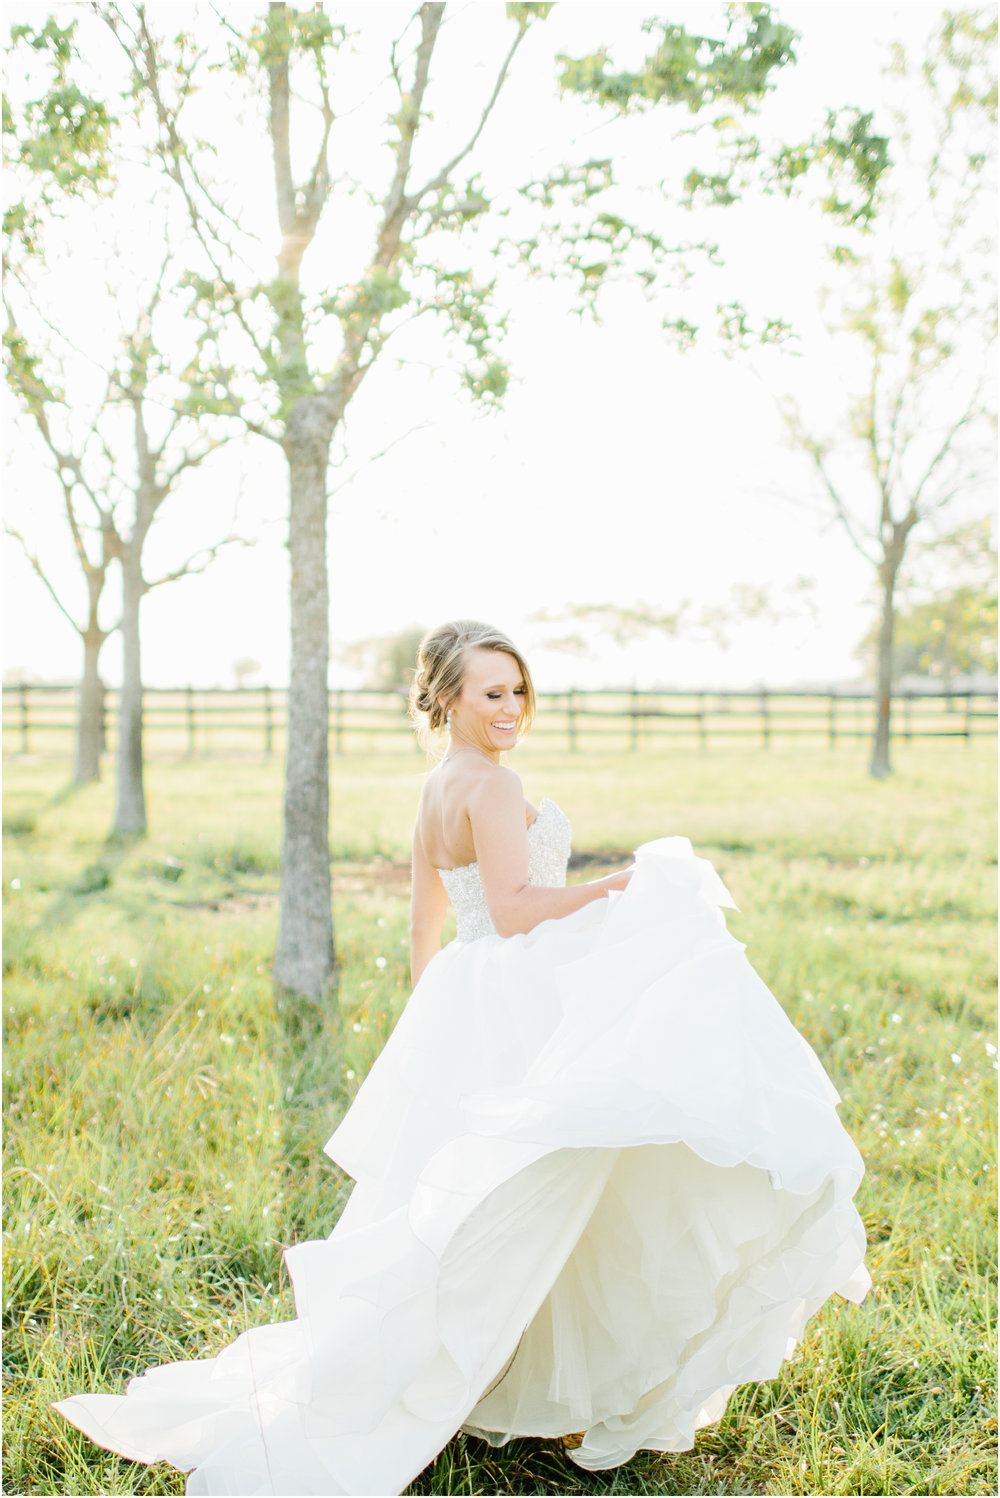 Natural_bridals_Grassy_field-13.jpg